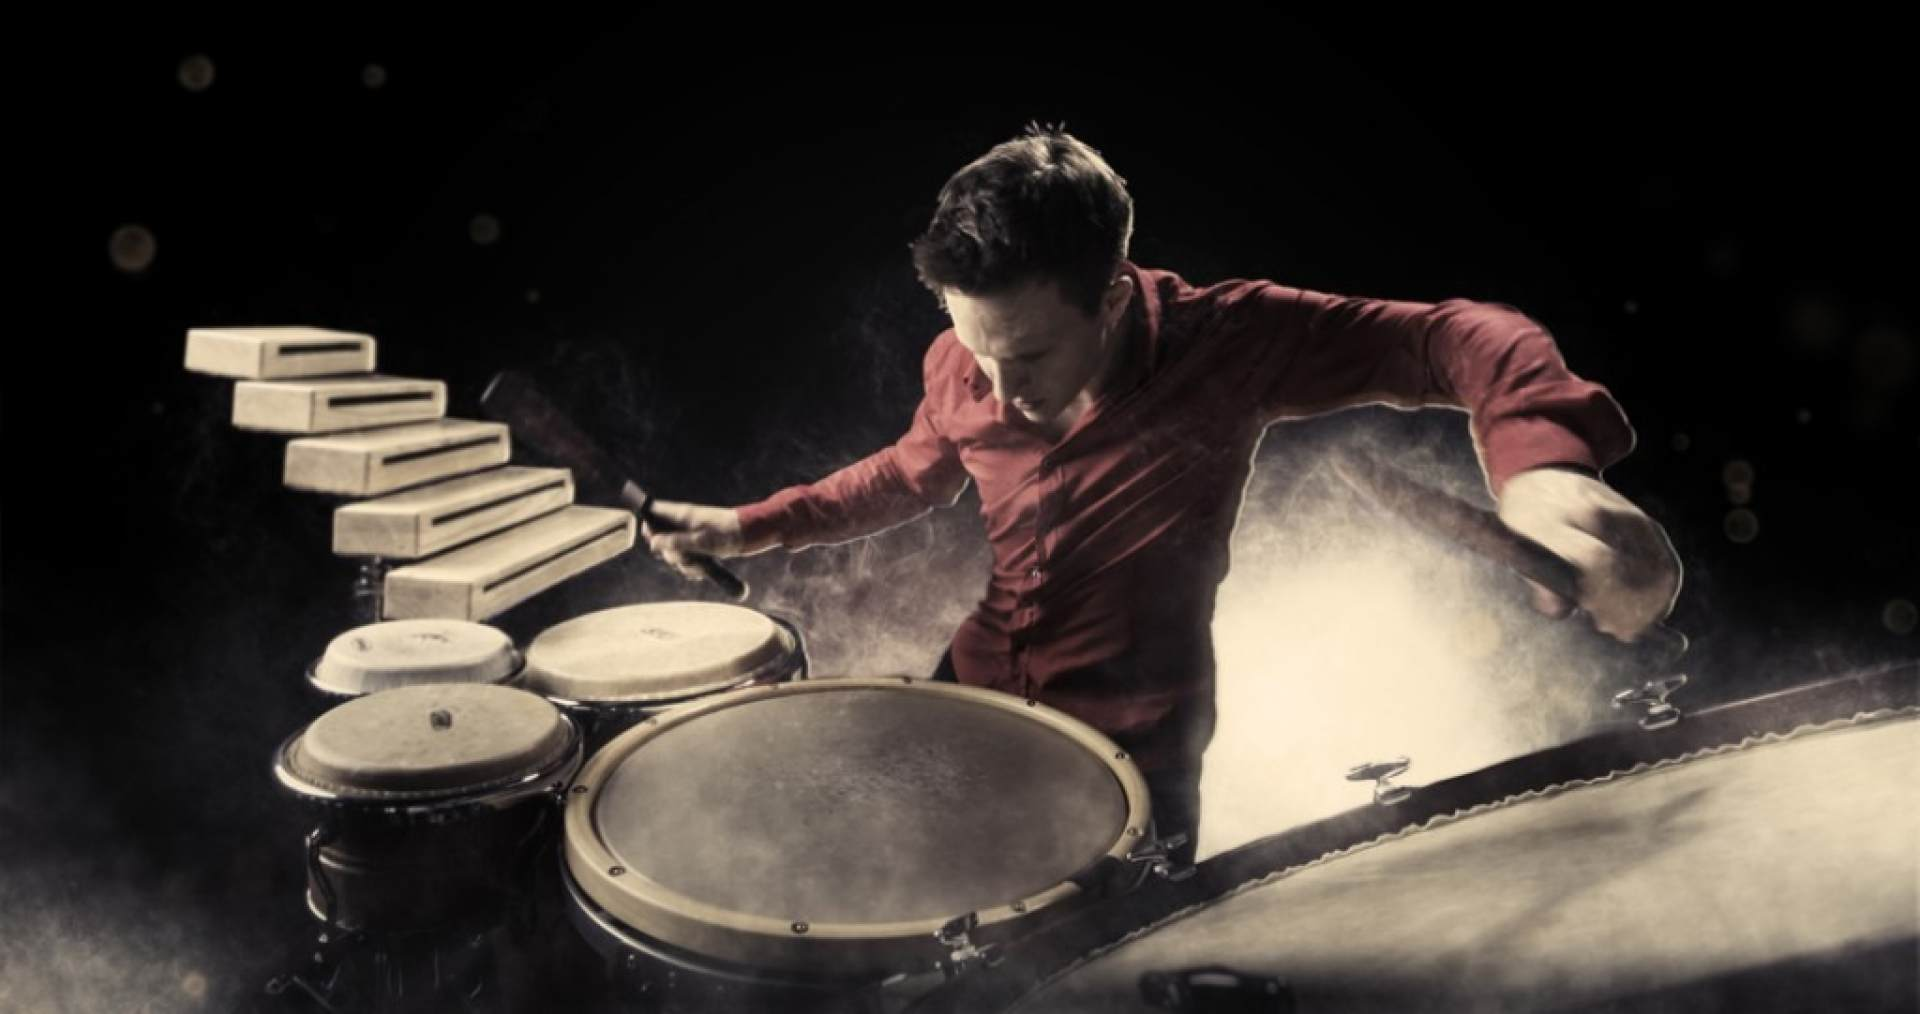 Christoph Sietzen – Multipercussion!